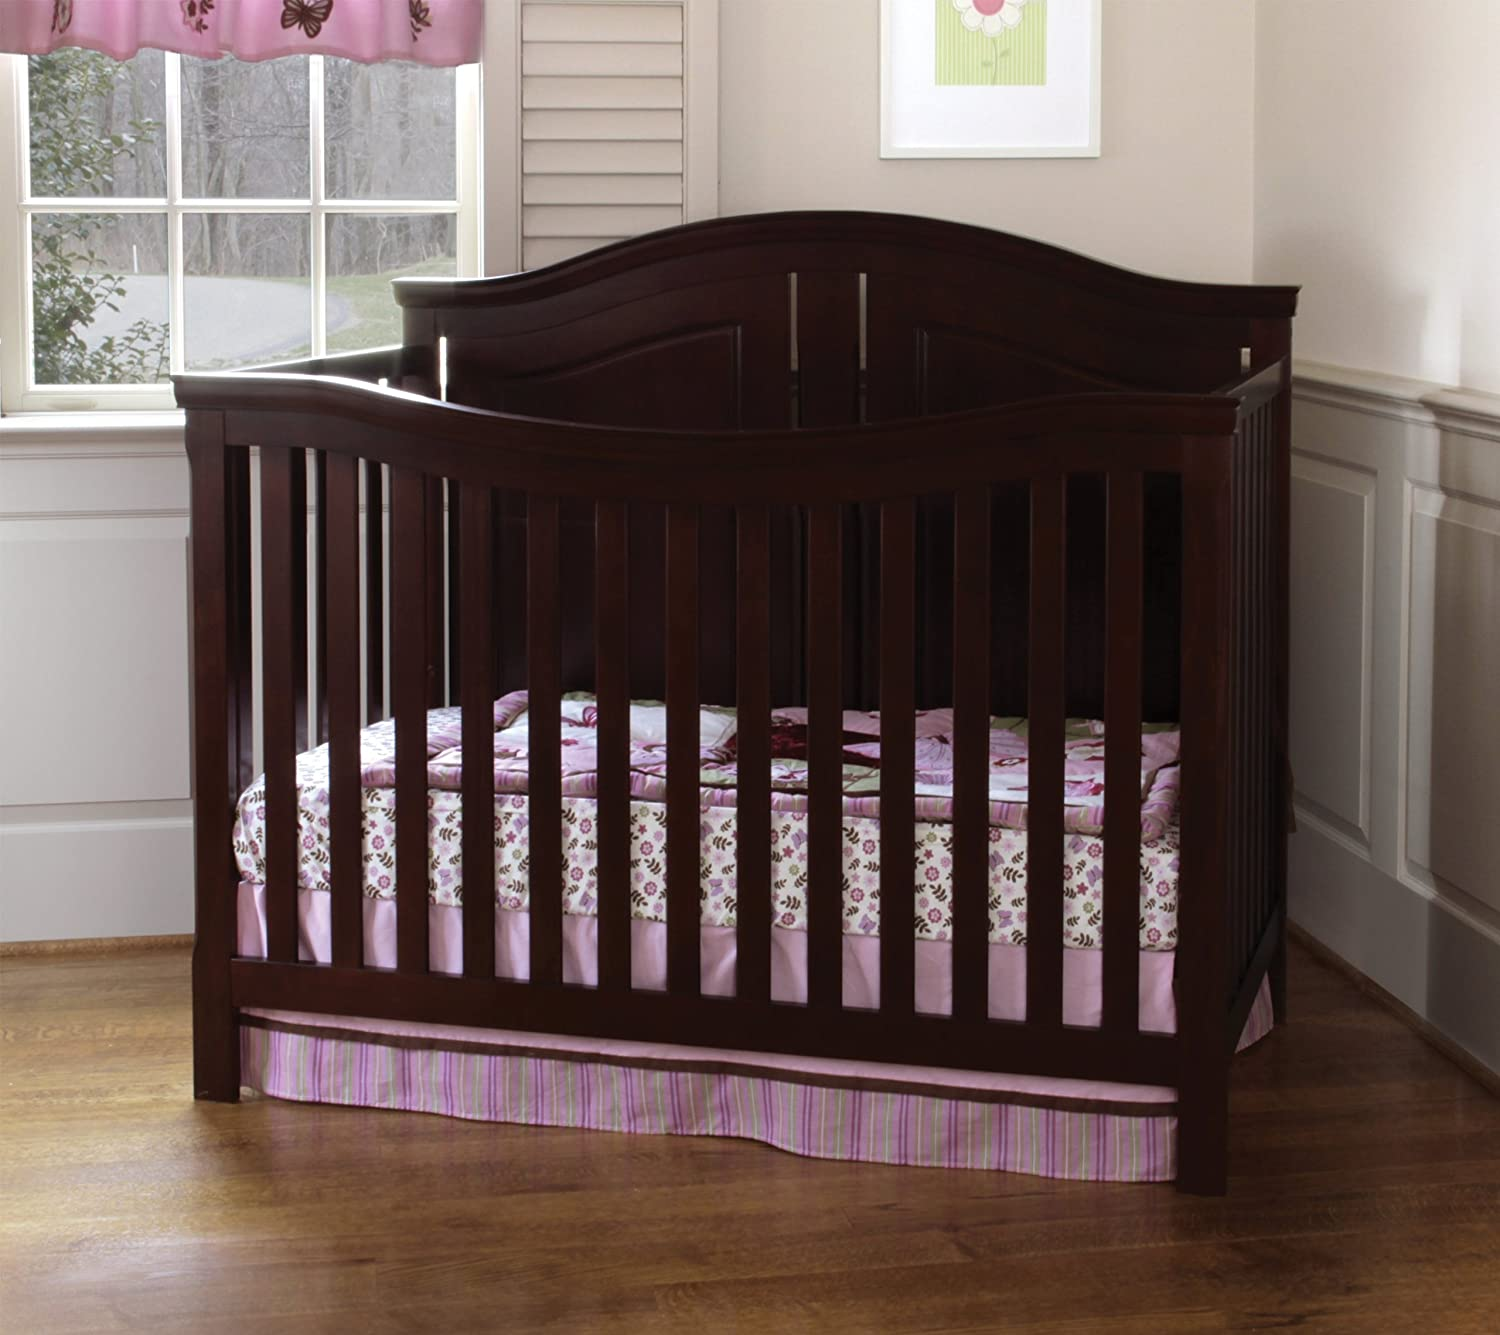 hayneedle cribs and sleigh tuscany combo crib sorelle convertible bed changer in